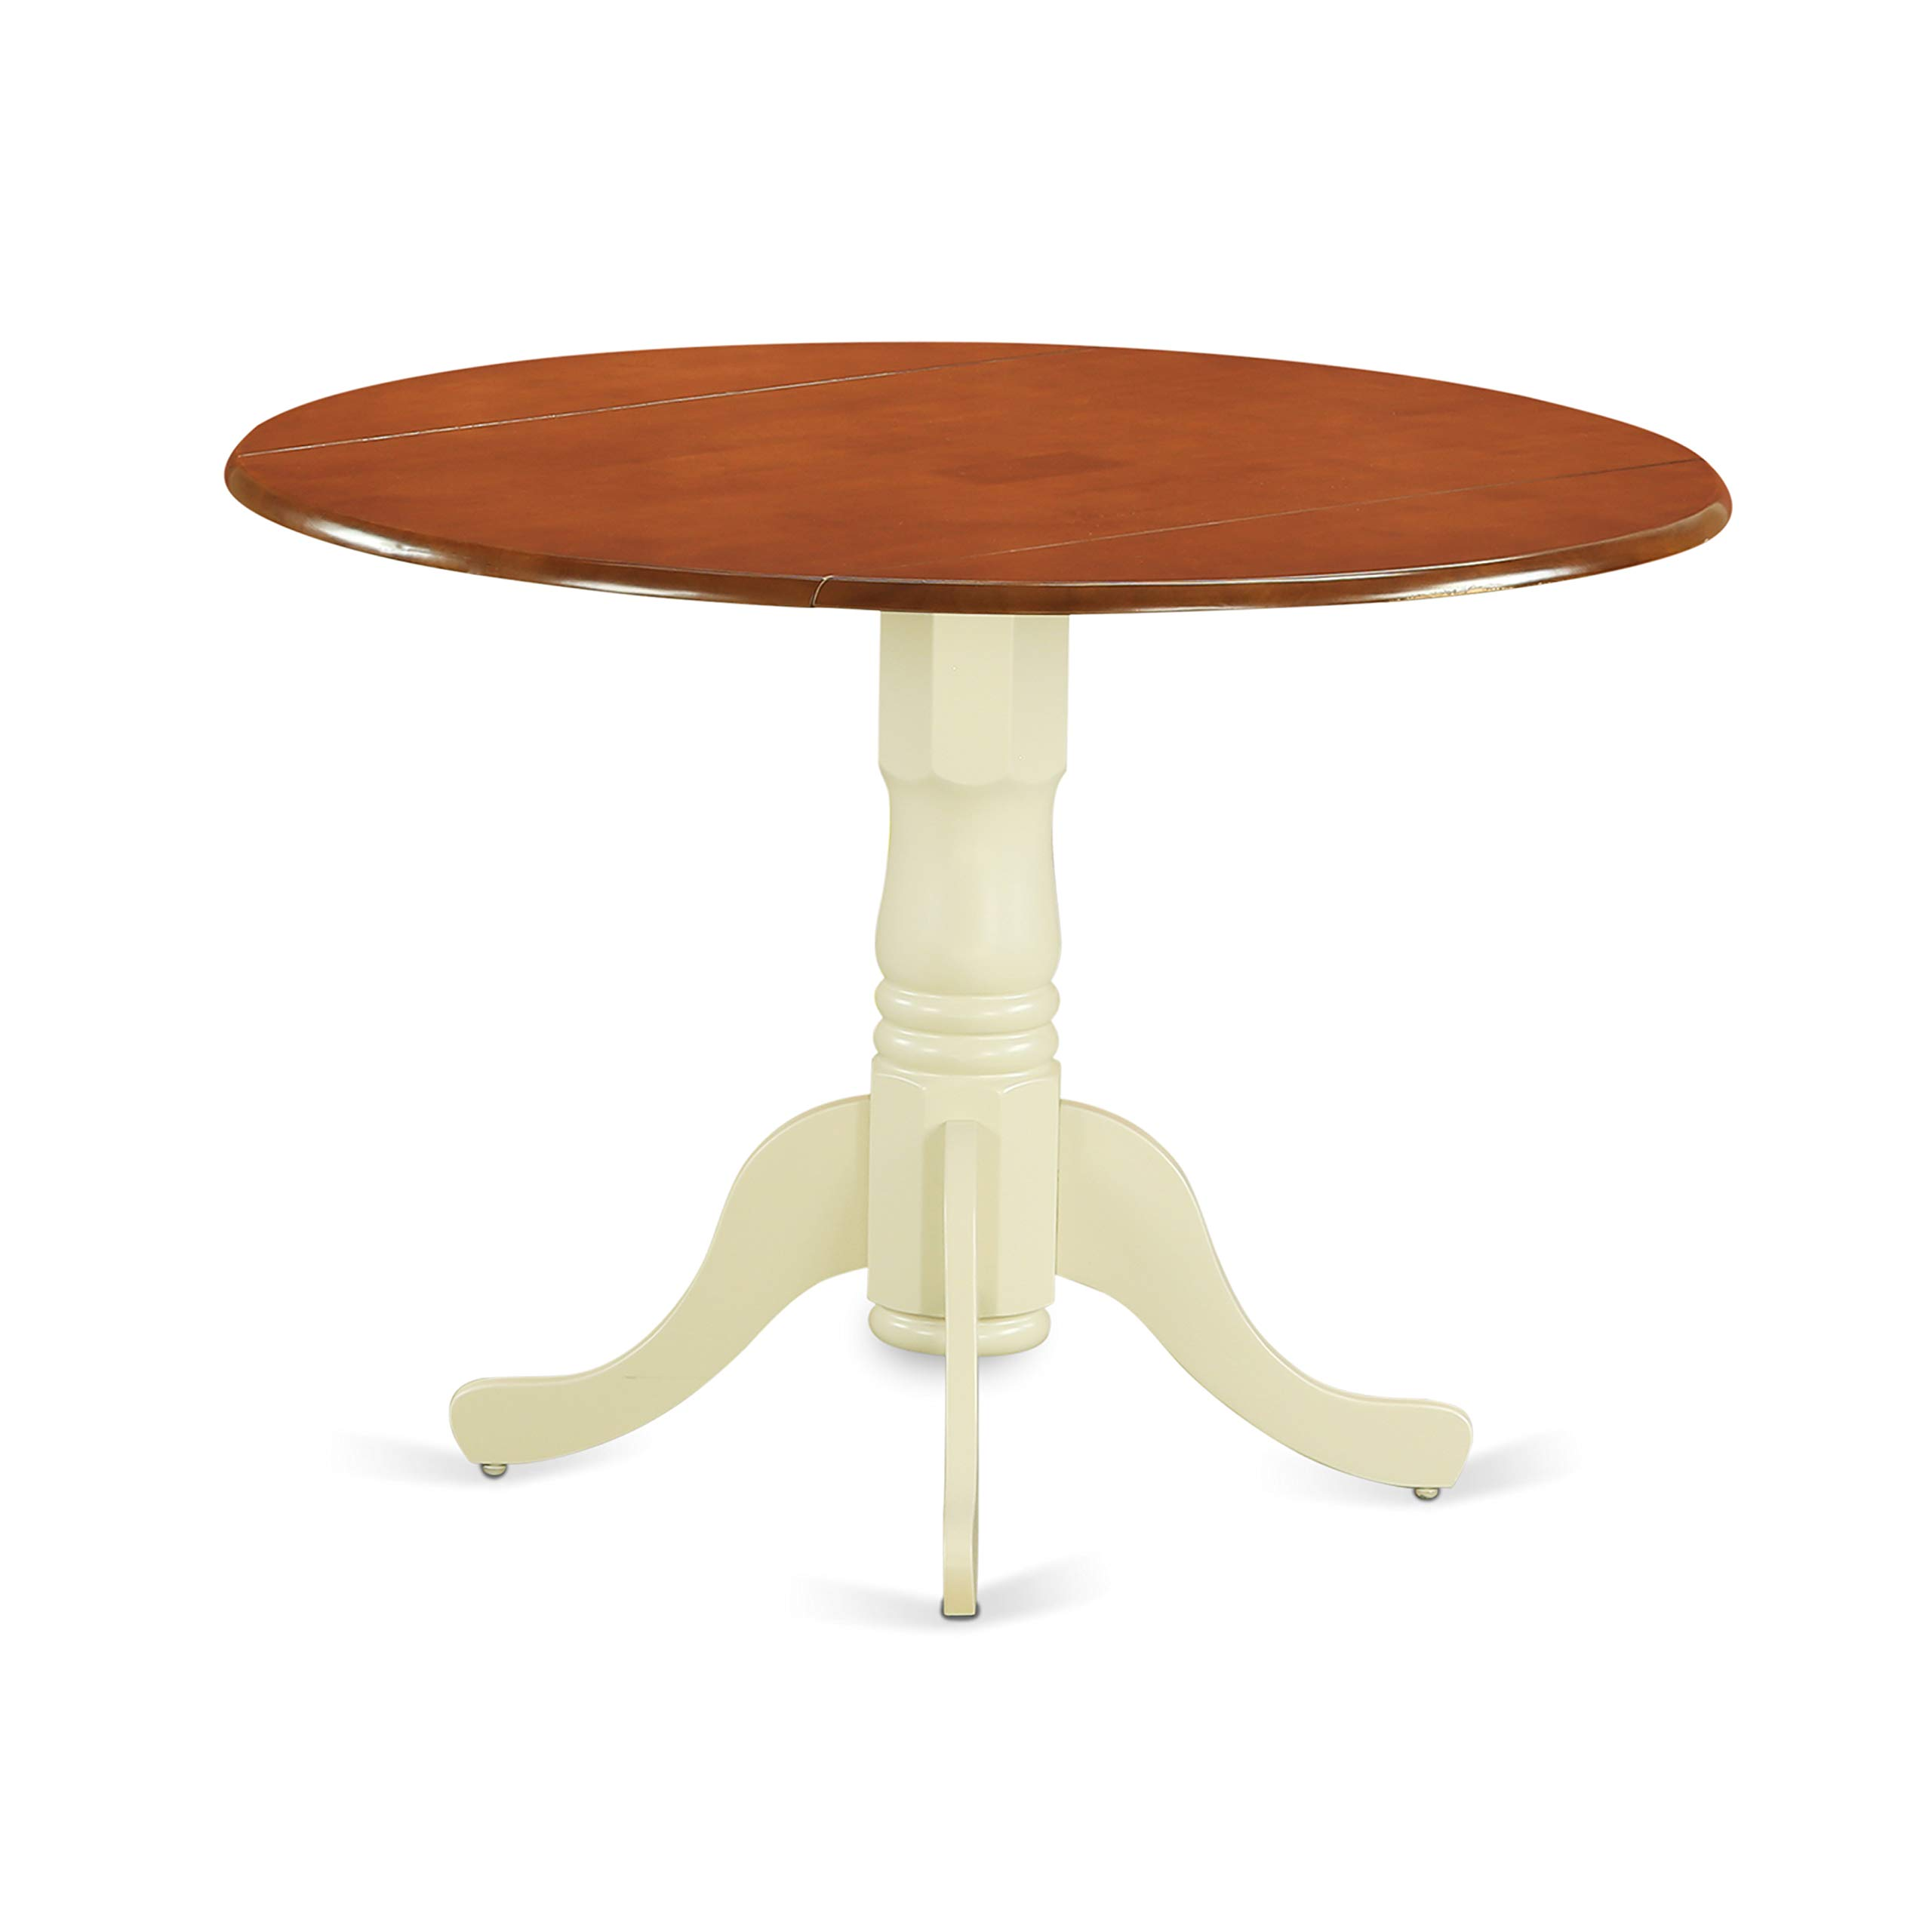 East West Furniture DLT-BMK-TP Dublin Round Table With Two 9'' Drop Leaves In Buttermilk And Cherry Finish